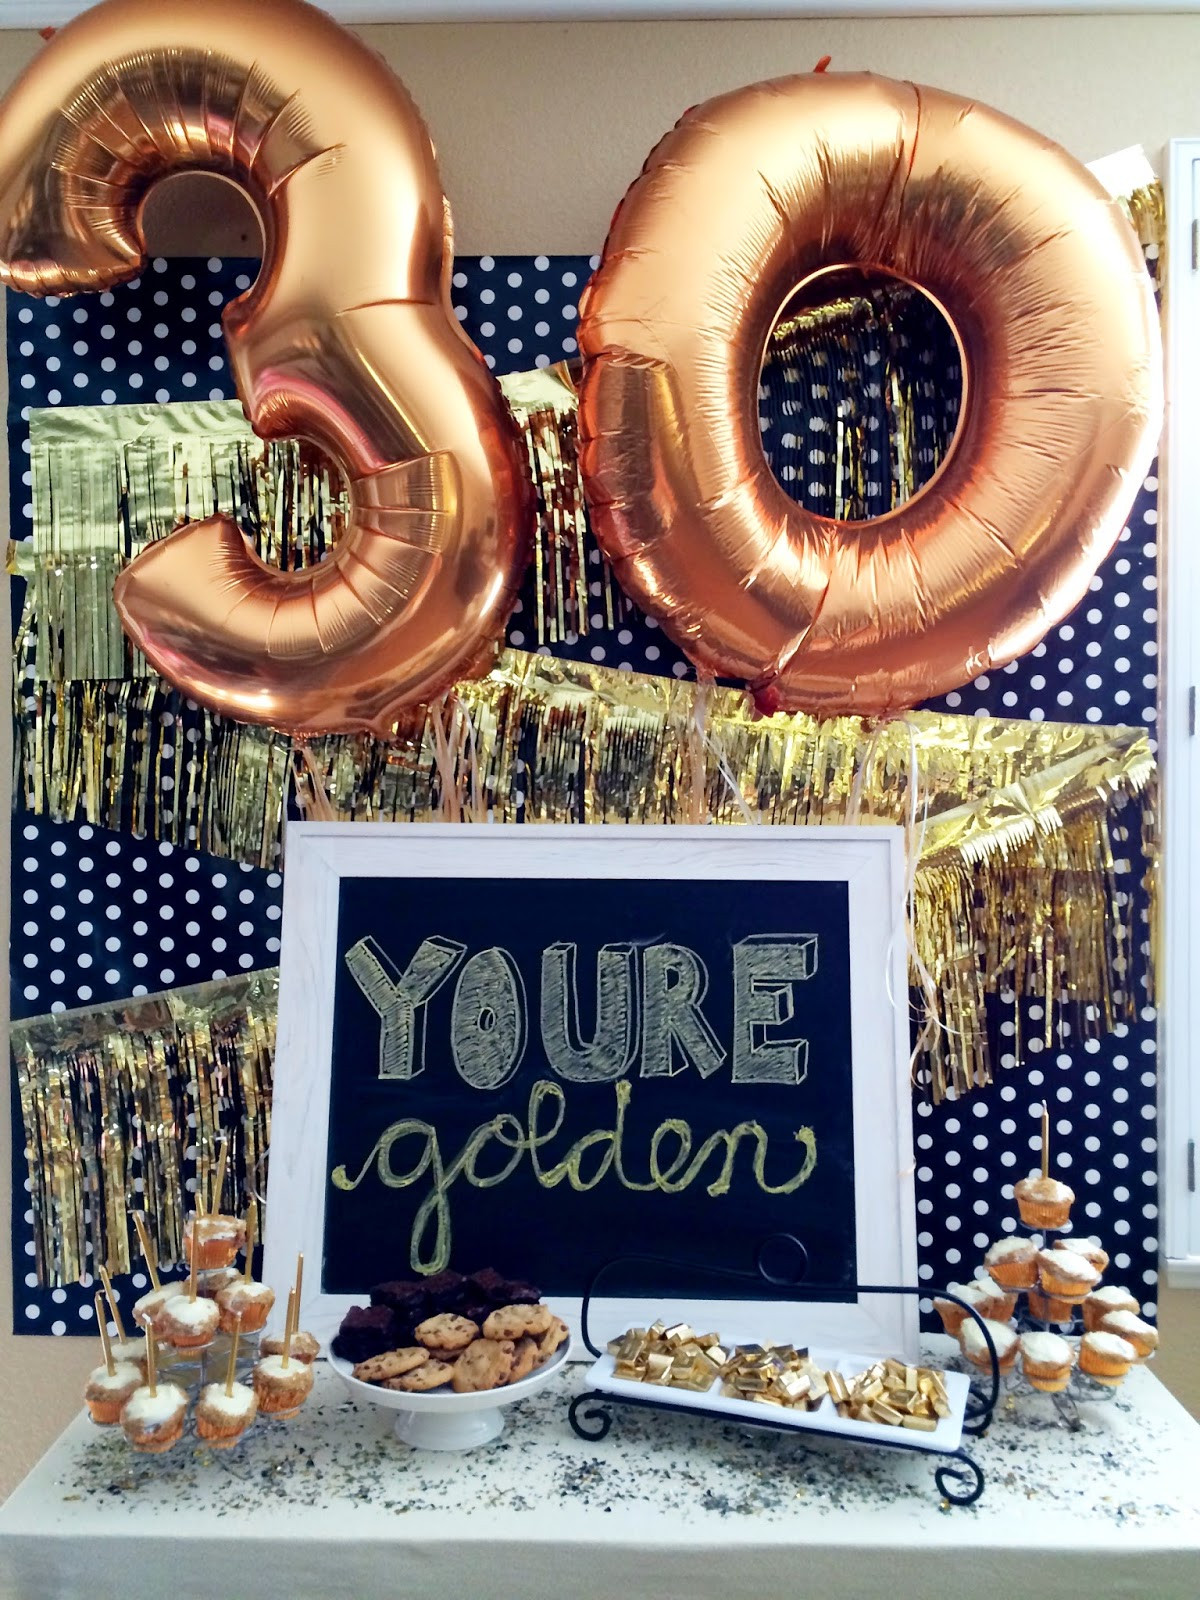 Best ideas about 30th Birthday Decorations . Save or Pin 7 Clever Themes for a Smashing 30th Birthday Party Now.